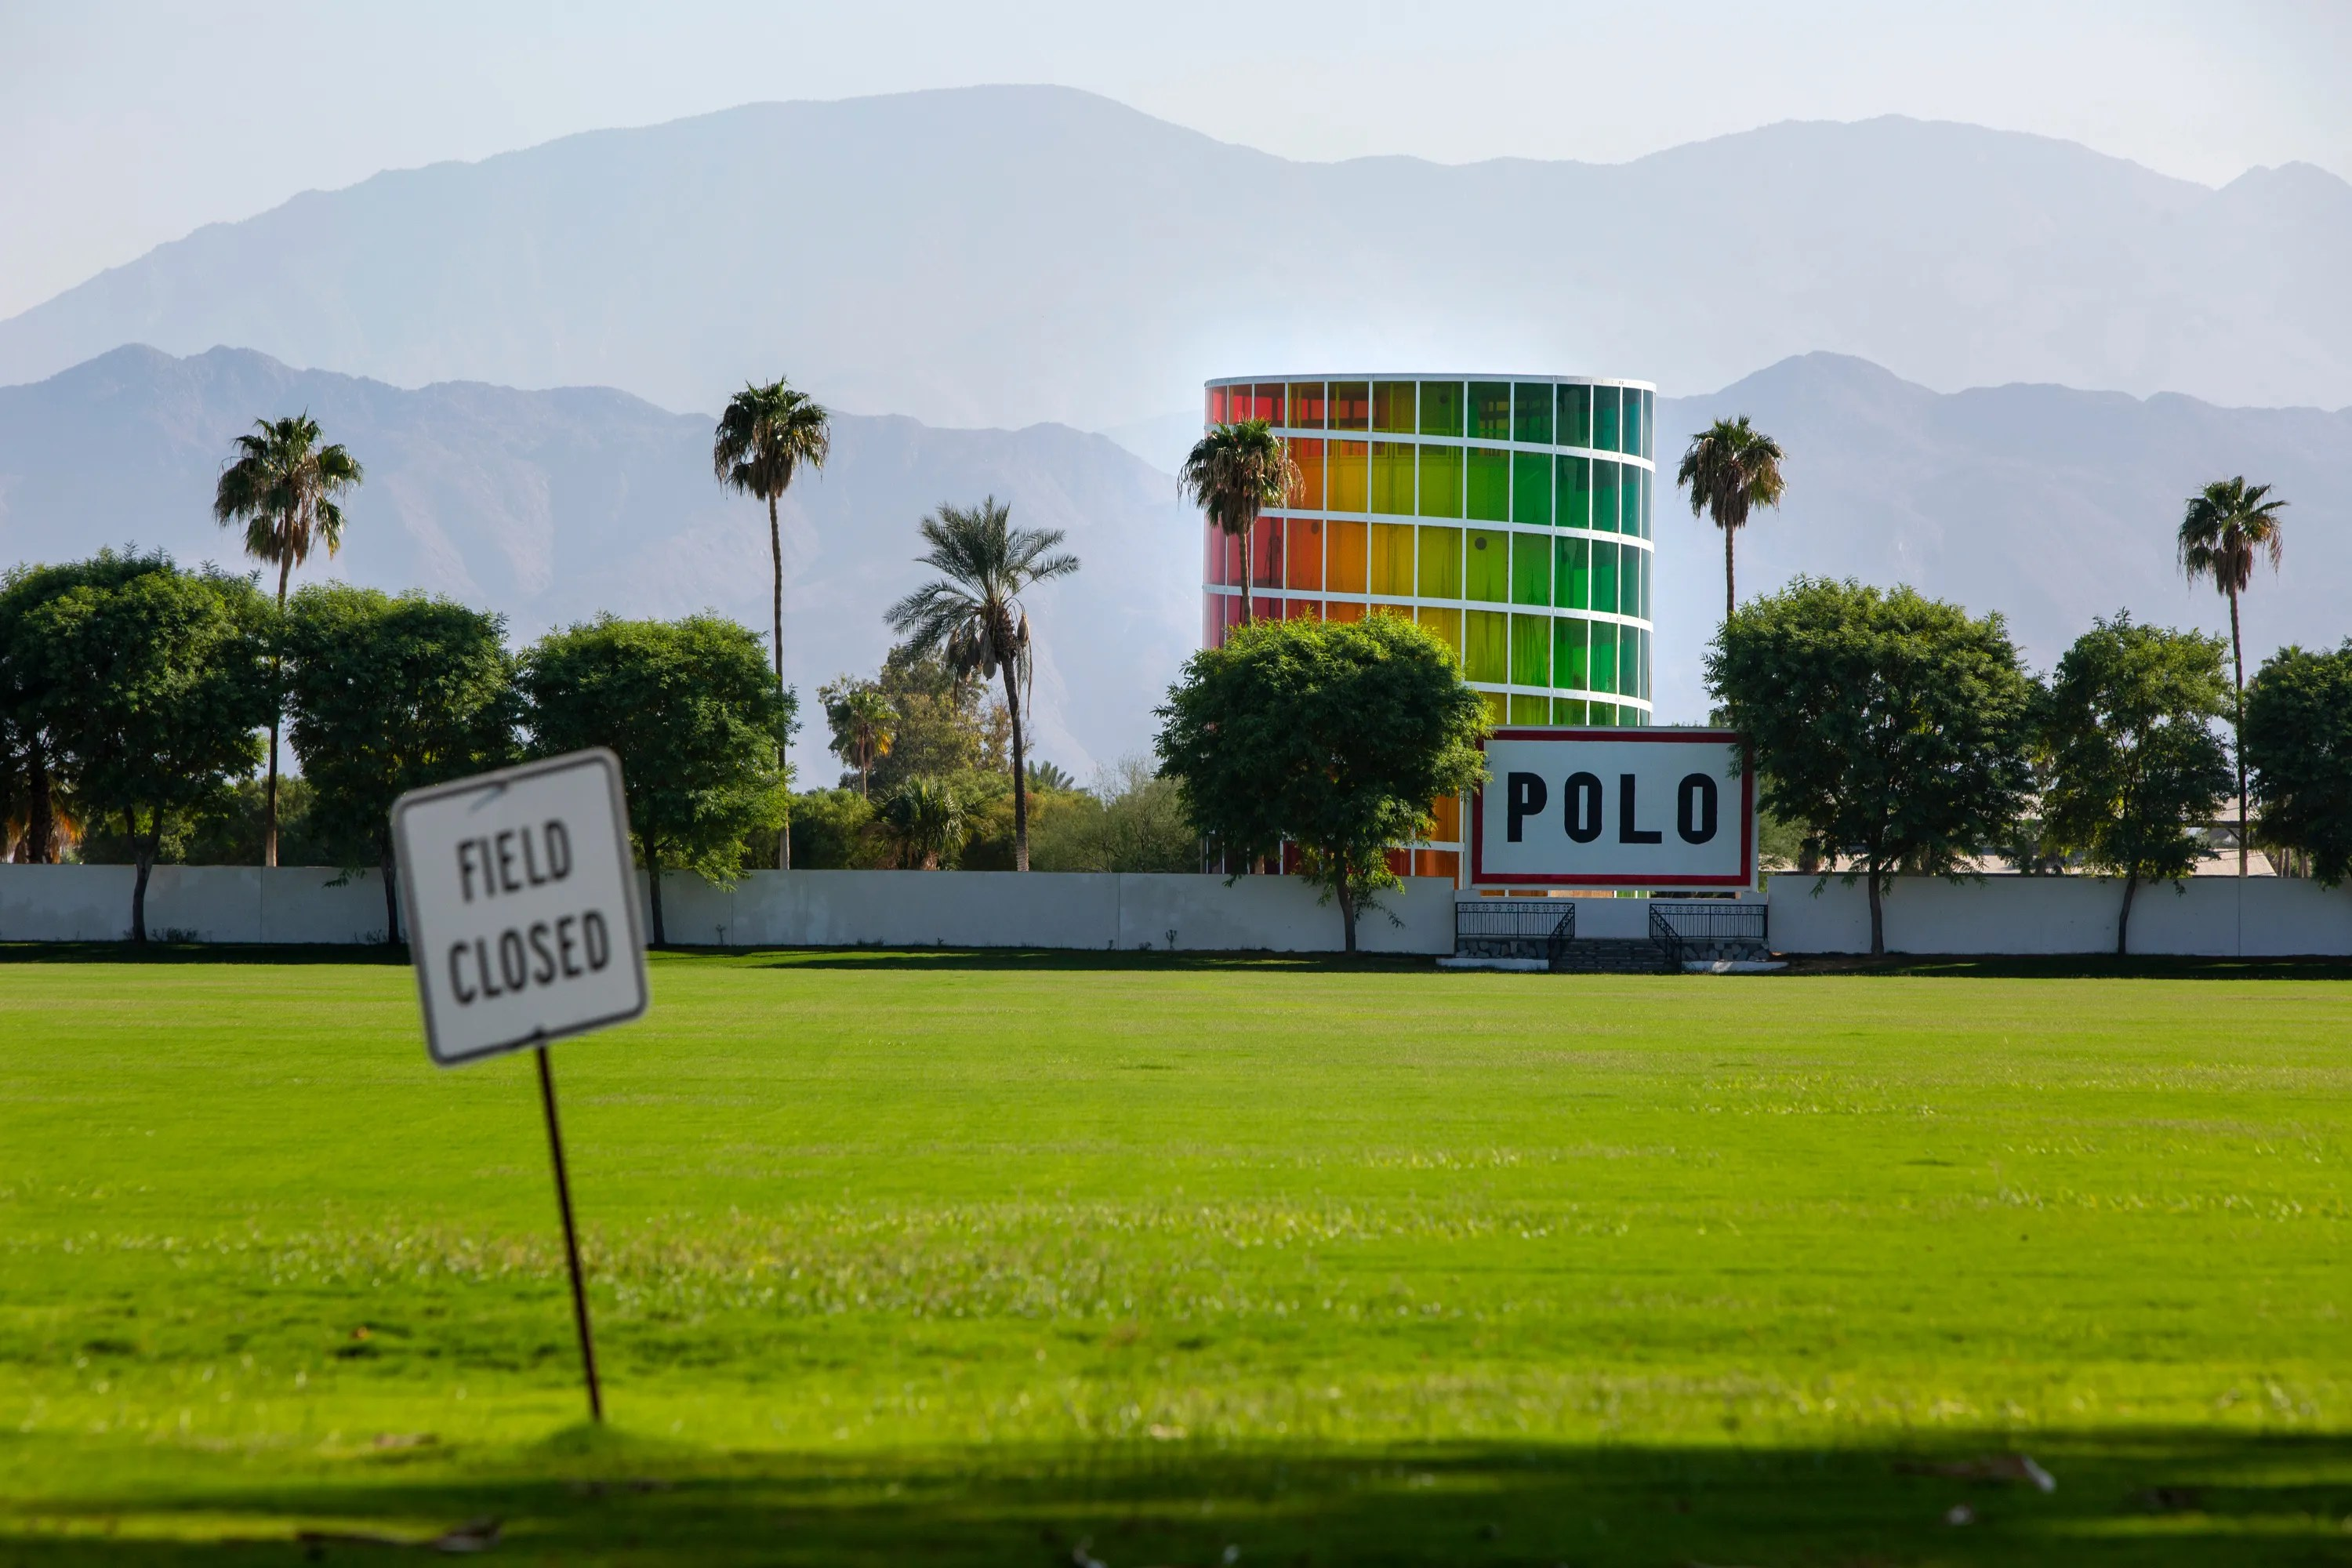 Hotel bookings dropped significantly due to the cancellation of festivals amid the coronavirus pandemic. The popular Coachella Valley Music and Arts Festival is held at the Empire Polo Club as seen here on October 7, 2020.